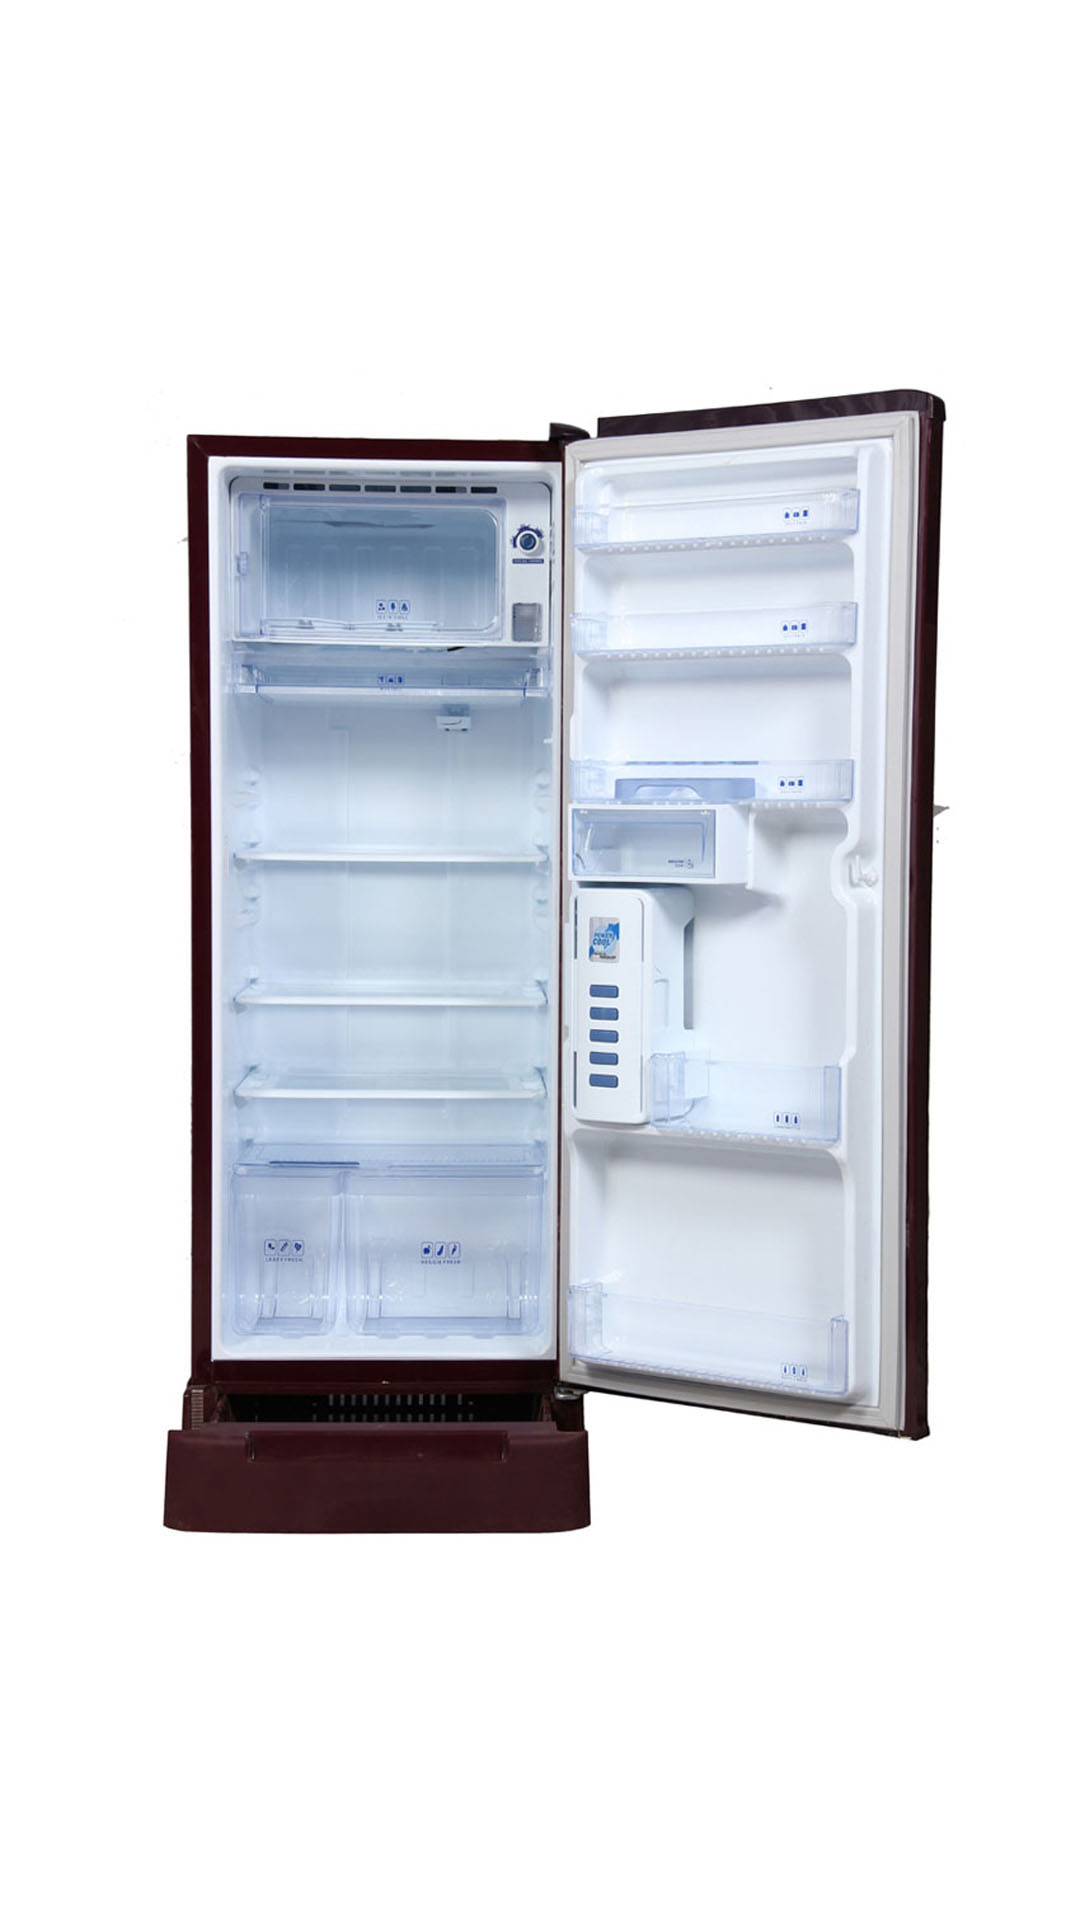 Whirlpool 230 ICEMAGIC ROY 215 L Double Door Refrigerator